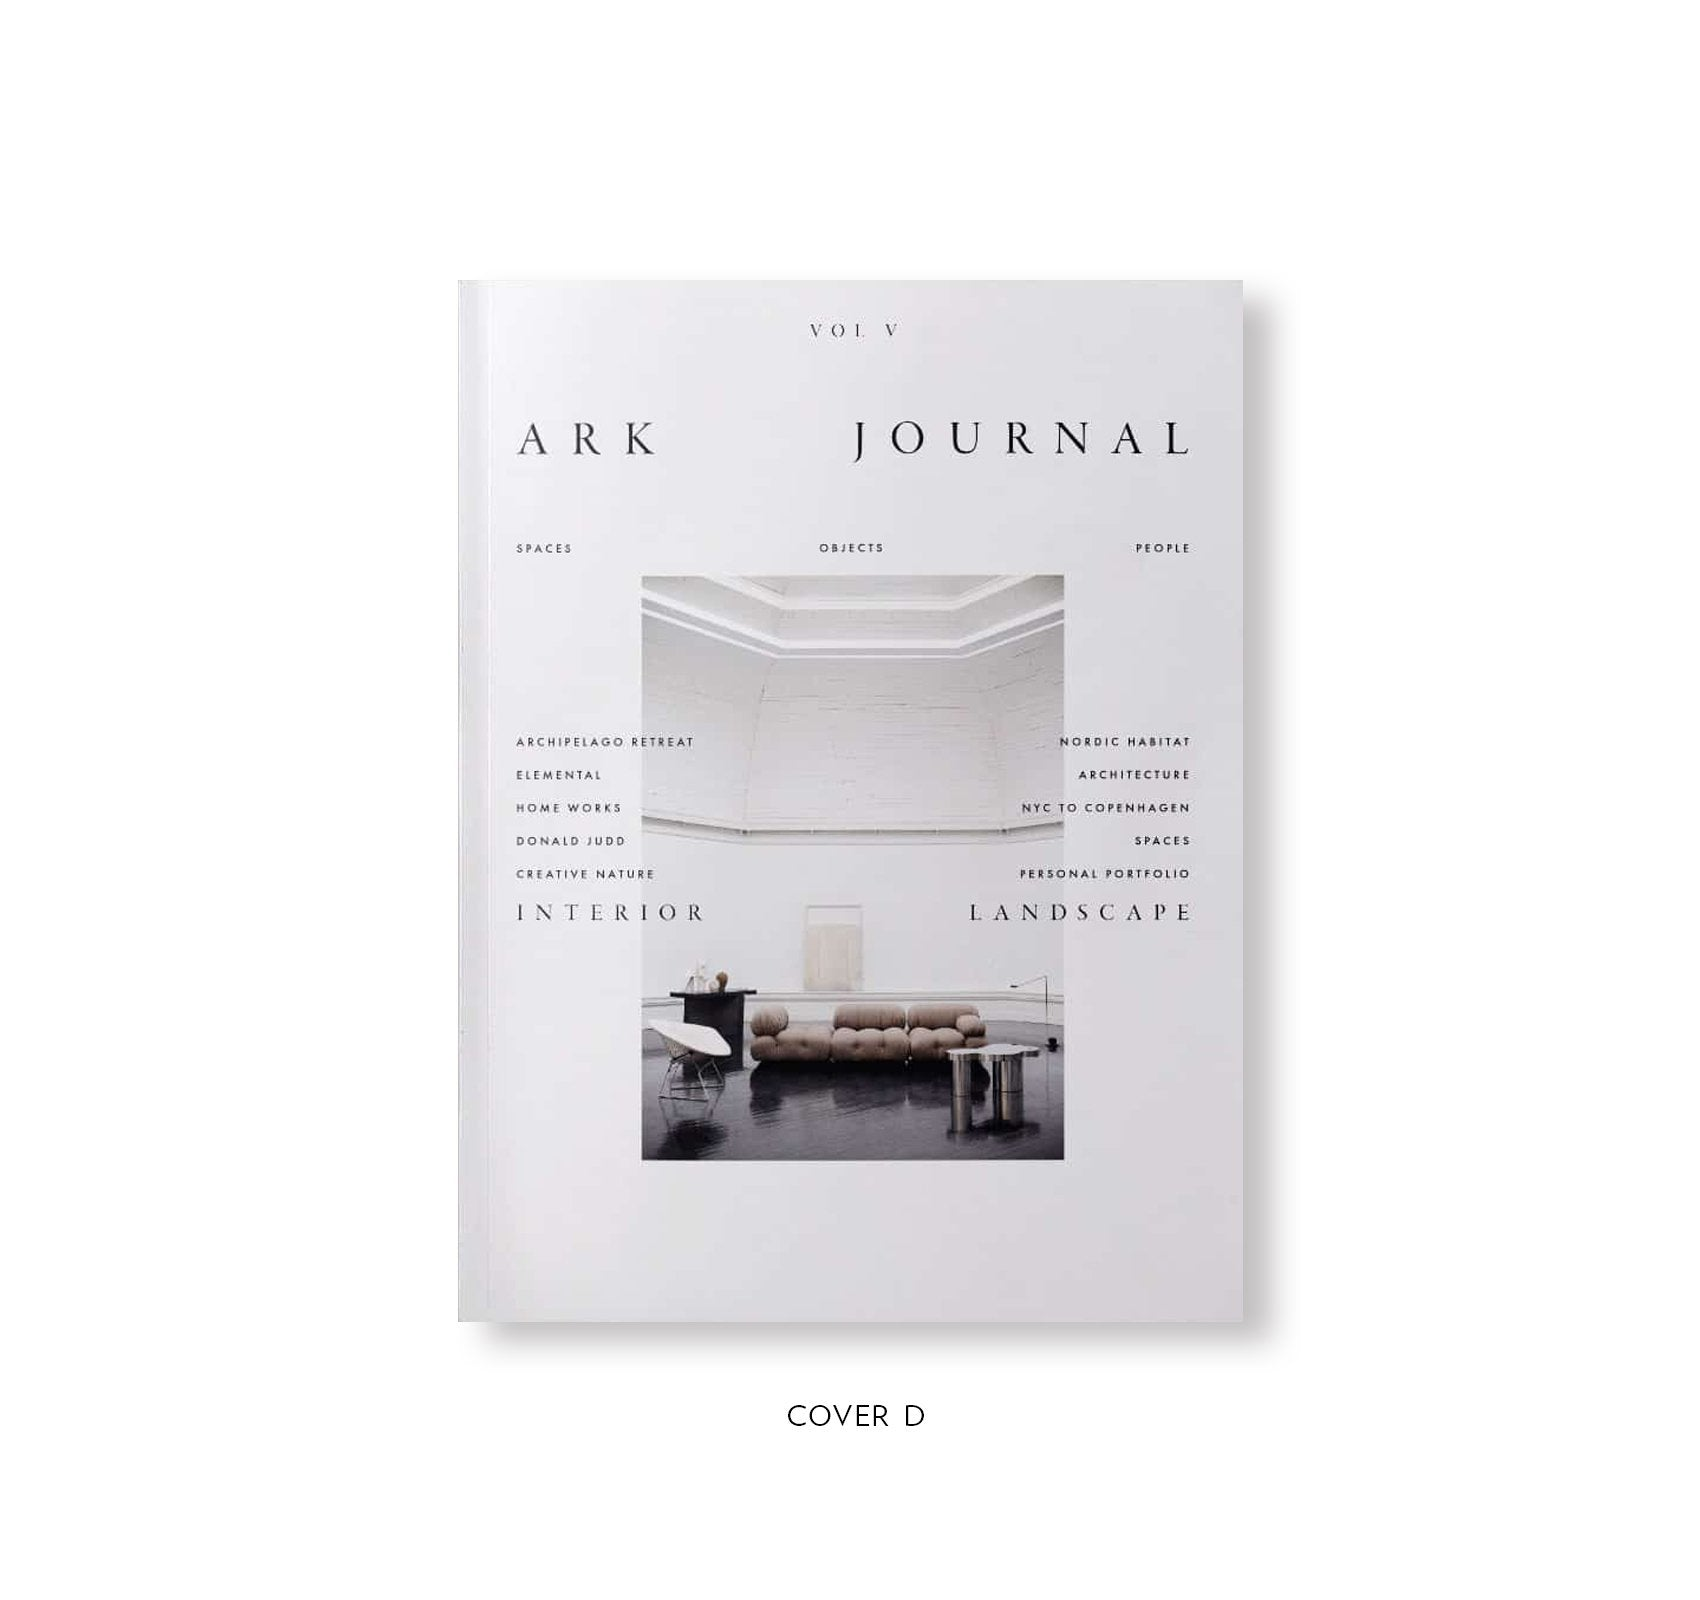 ARK JOURNAL VOLUME V SPRING/SUMMER 2021